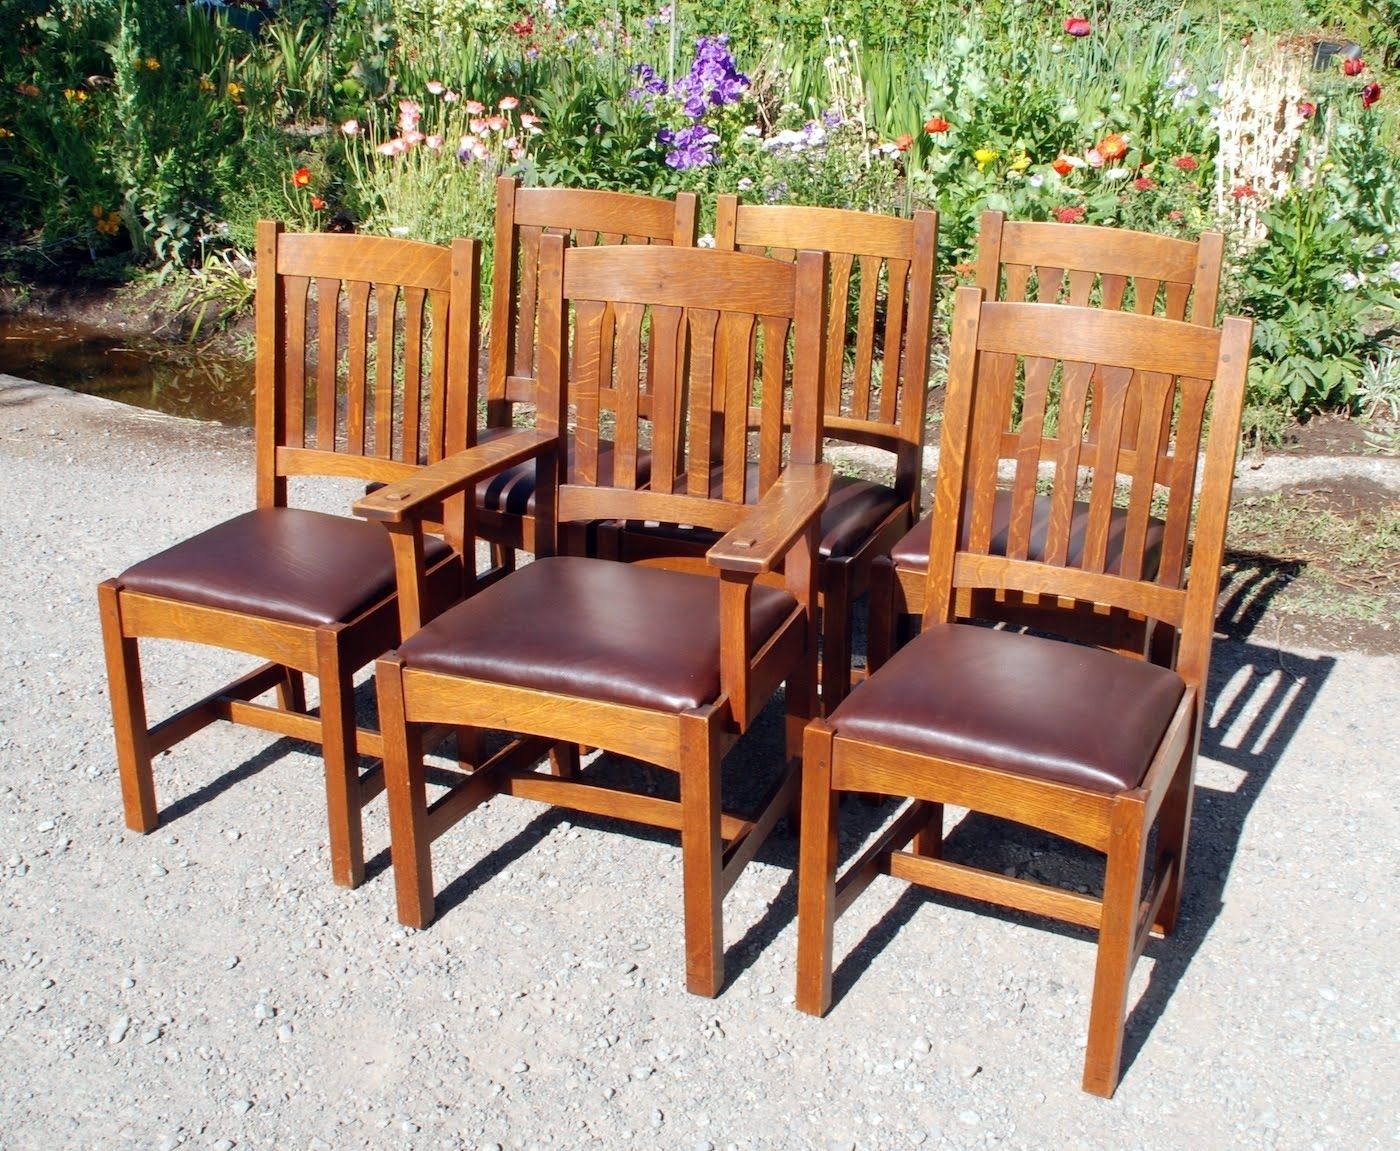 Current Voorhees Craftsman Mission Oak Furniture – Set Of 6 Original L Throughout Craftsman Arm Chairs (#11 of 20)